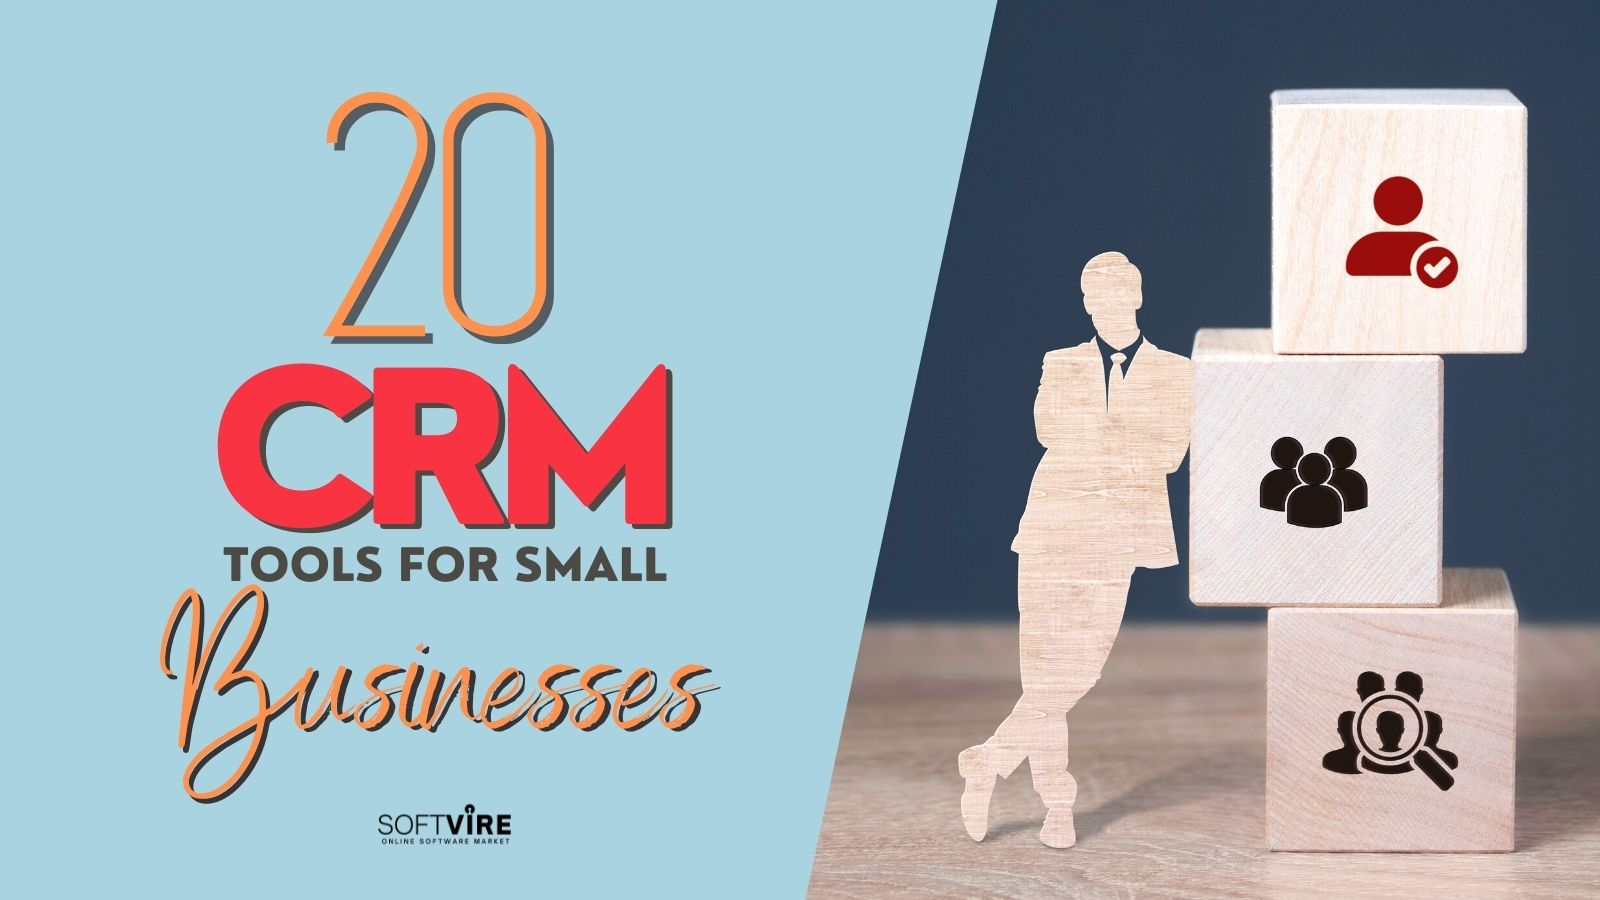 20 CRM Tools for Small Businesses, Softvire Global Market